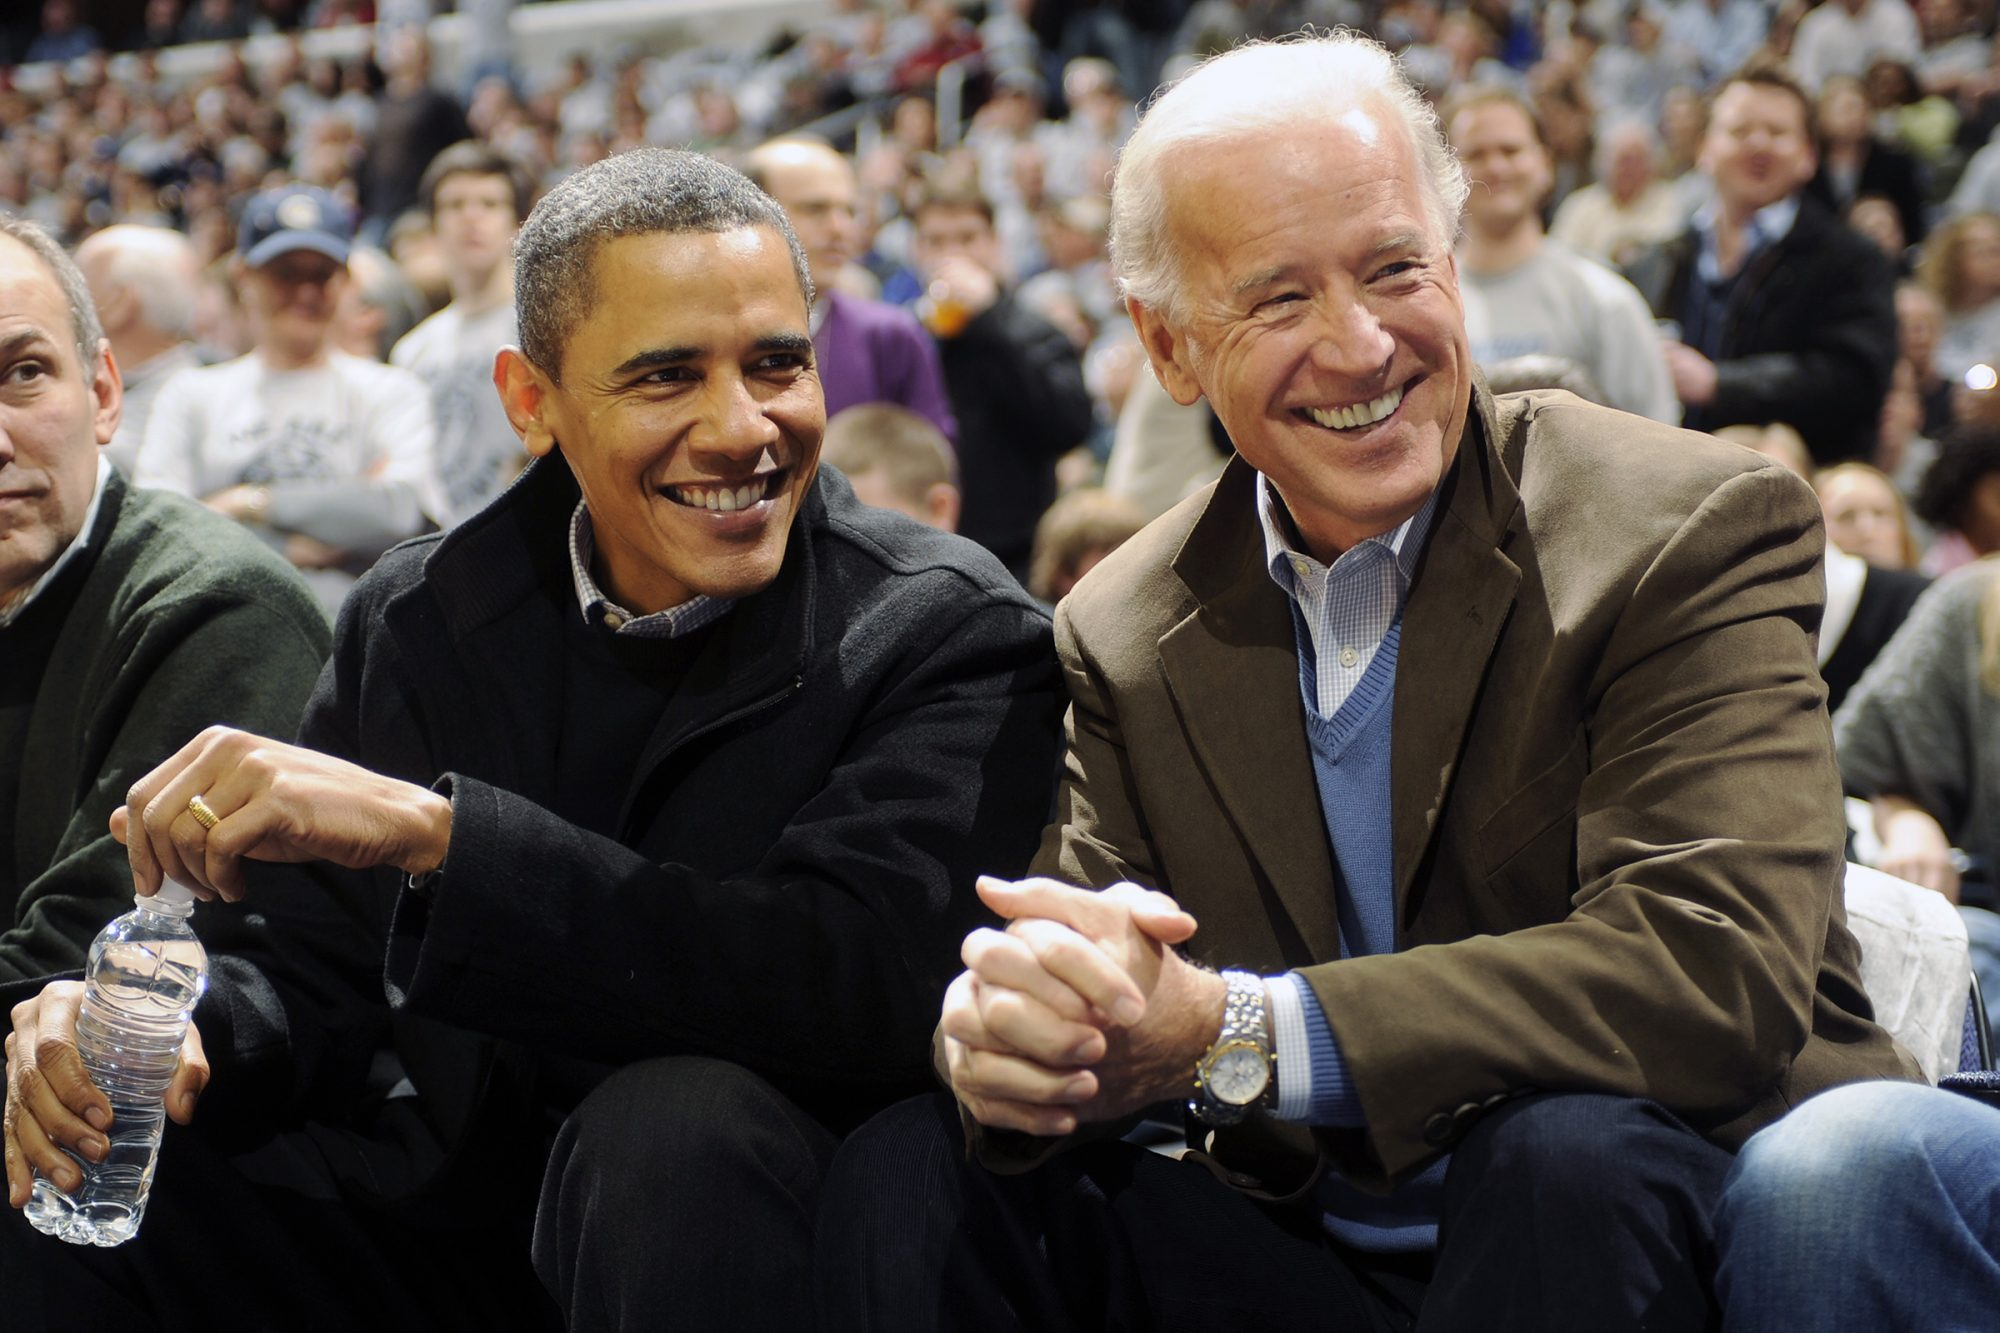 President of the United States Barack Obama and Vice President Joe Biden